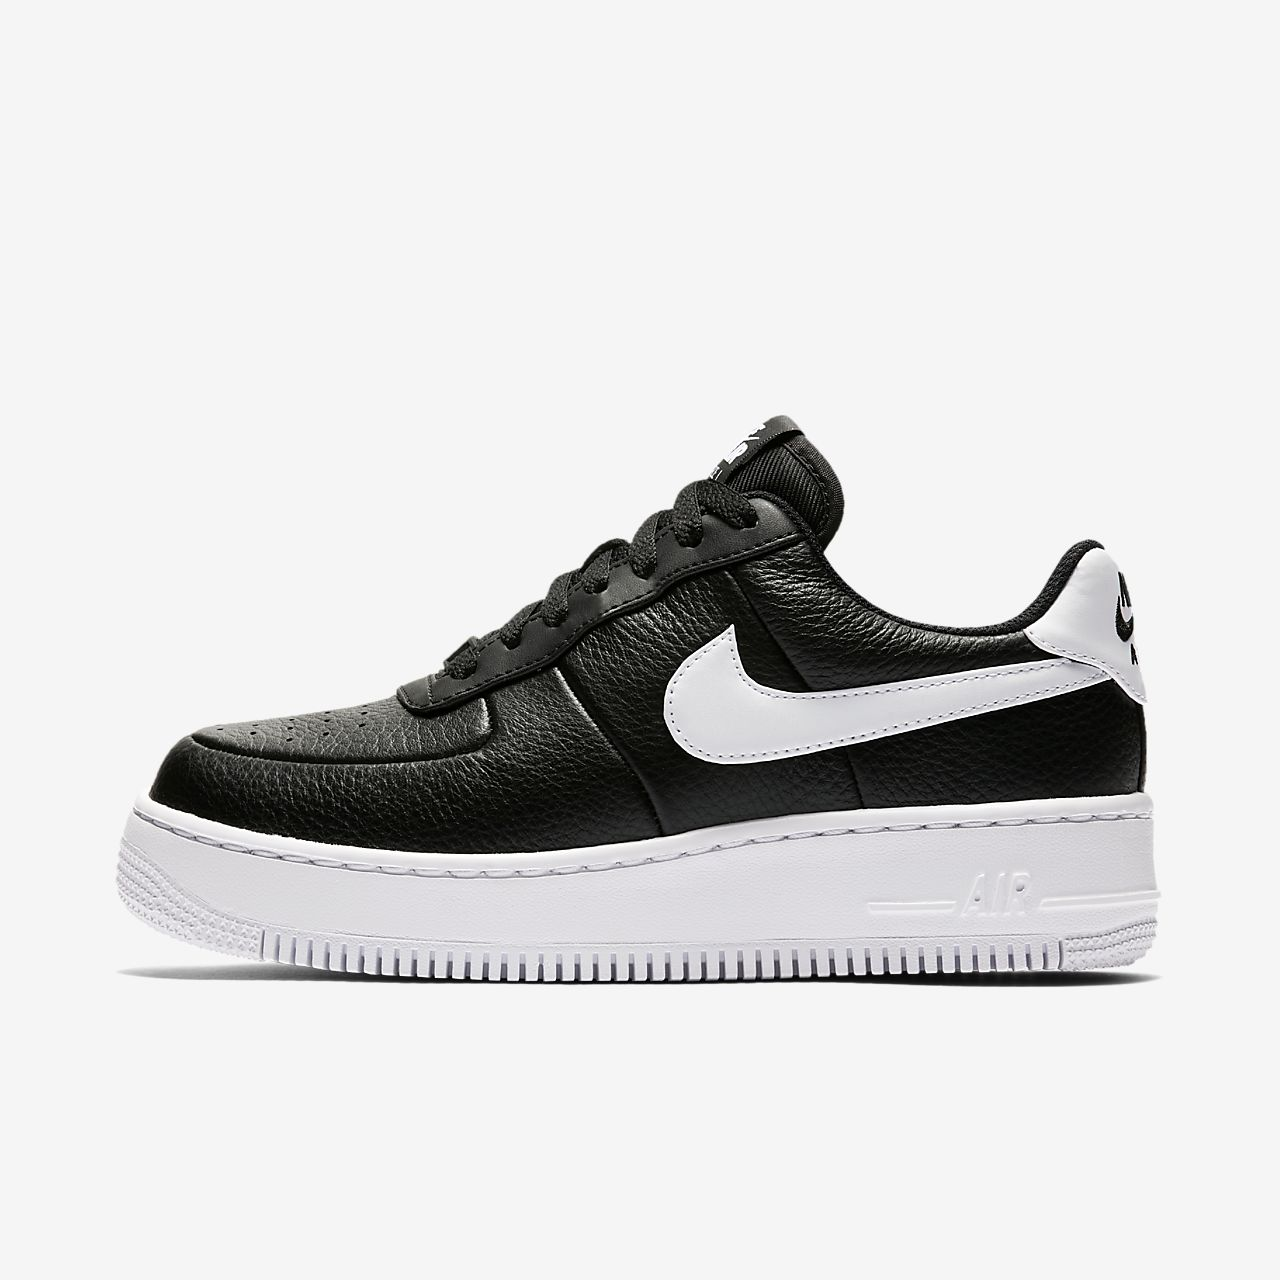 Chaussure Nike Air Upstep Force 1 Upstep Air Pour Ma fa80ef